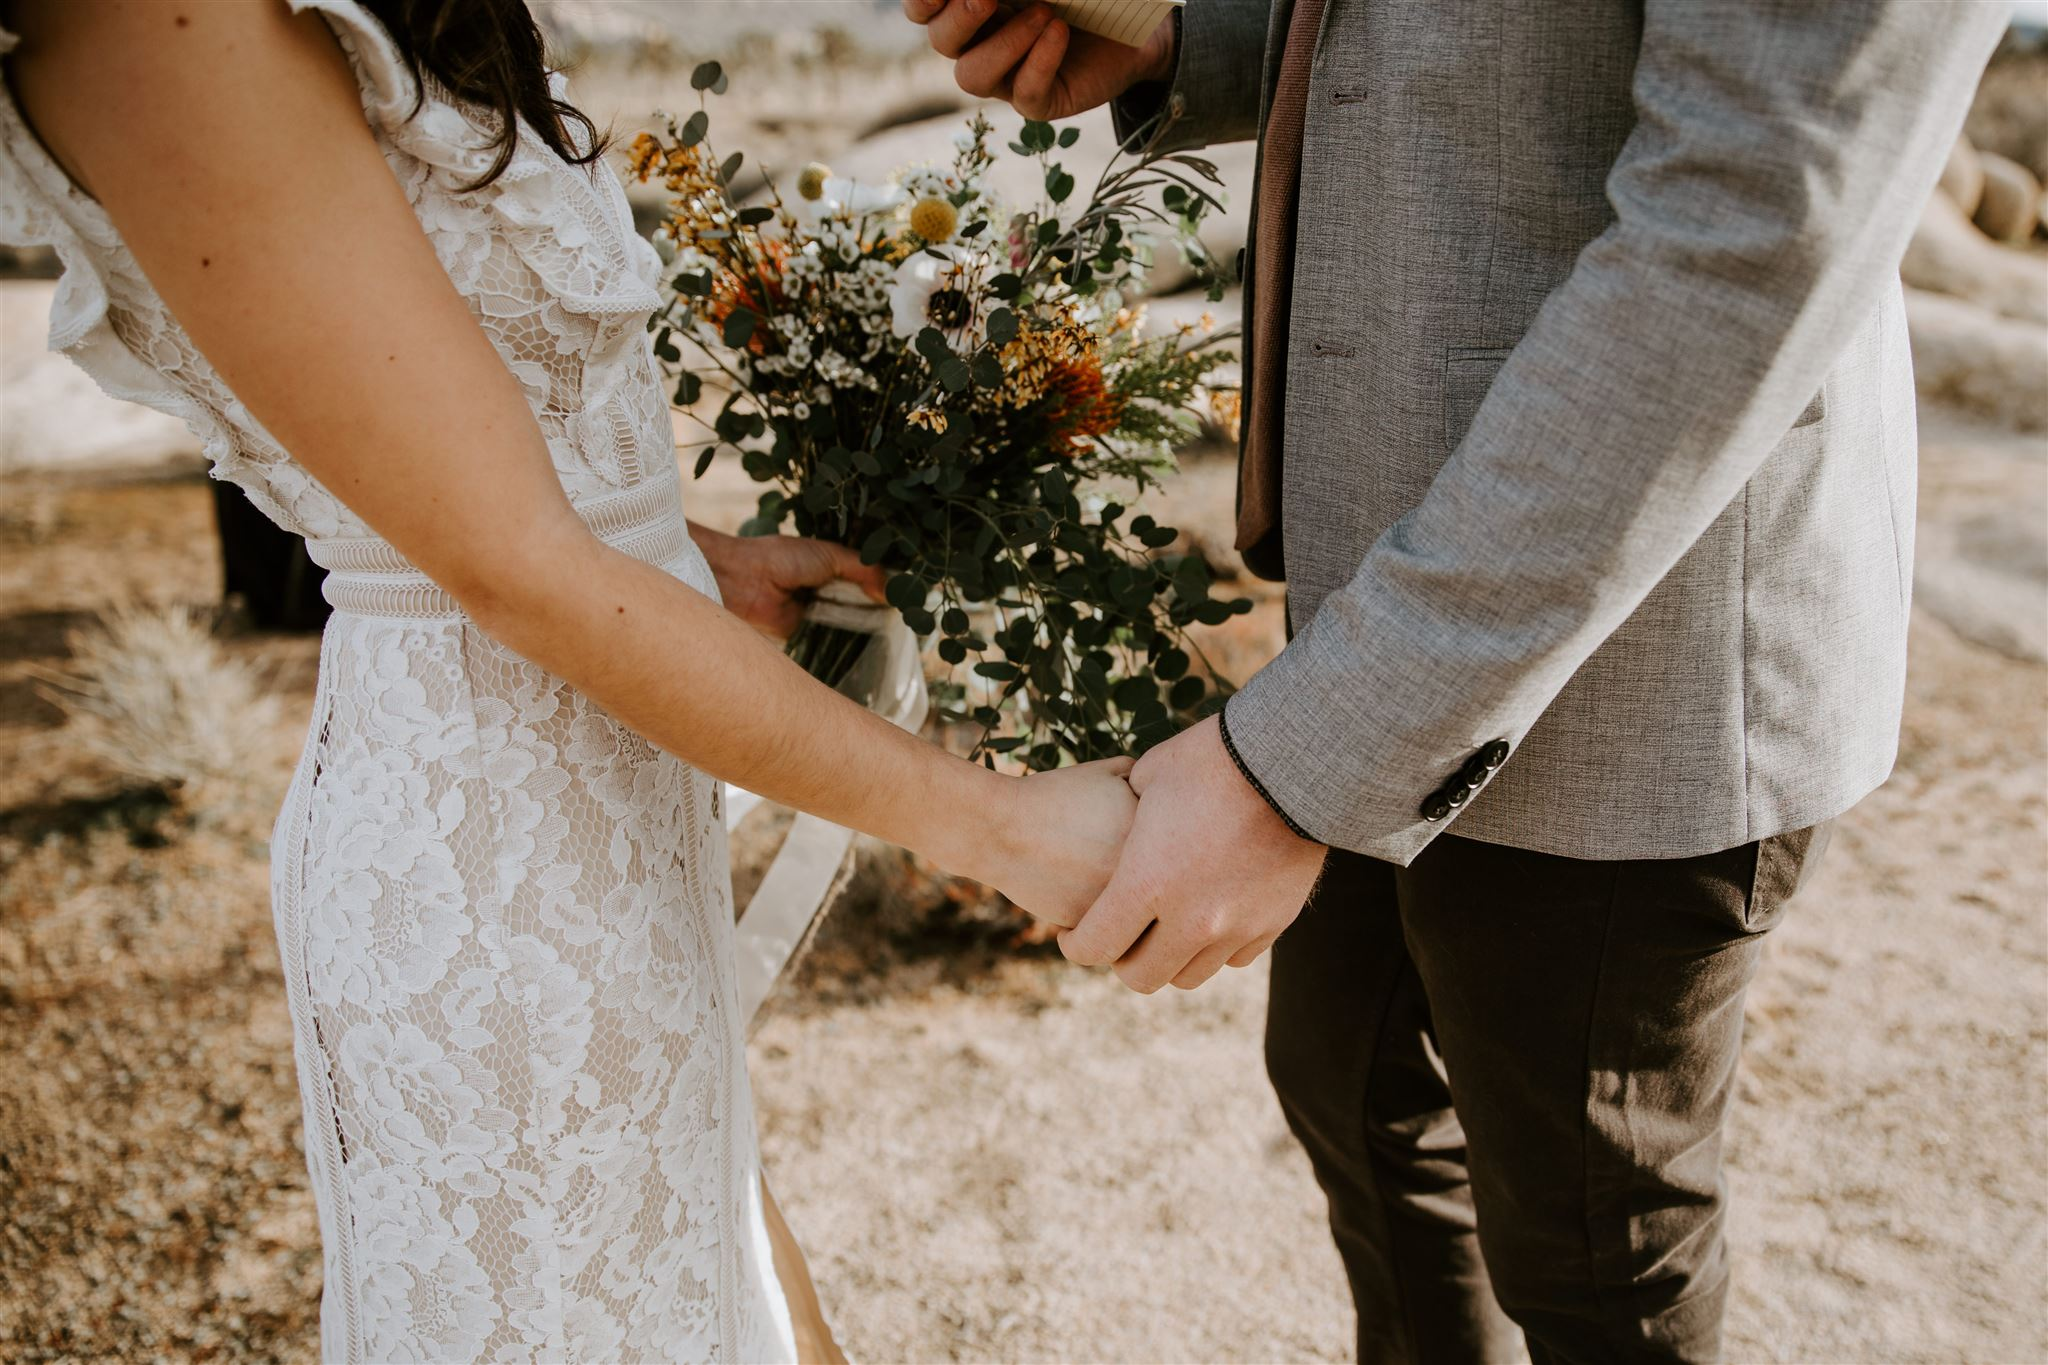 Joshua Tree CA Elopement Wedding  Photographer May Iosotaluno 37.jpg